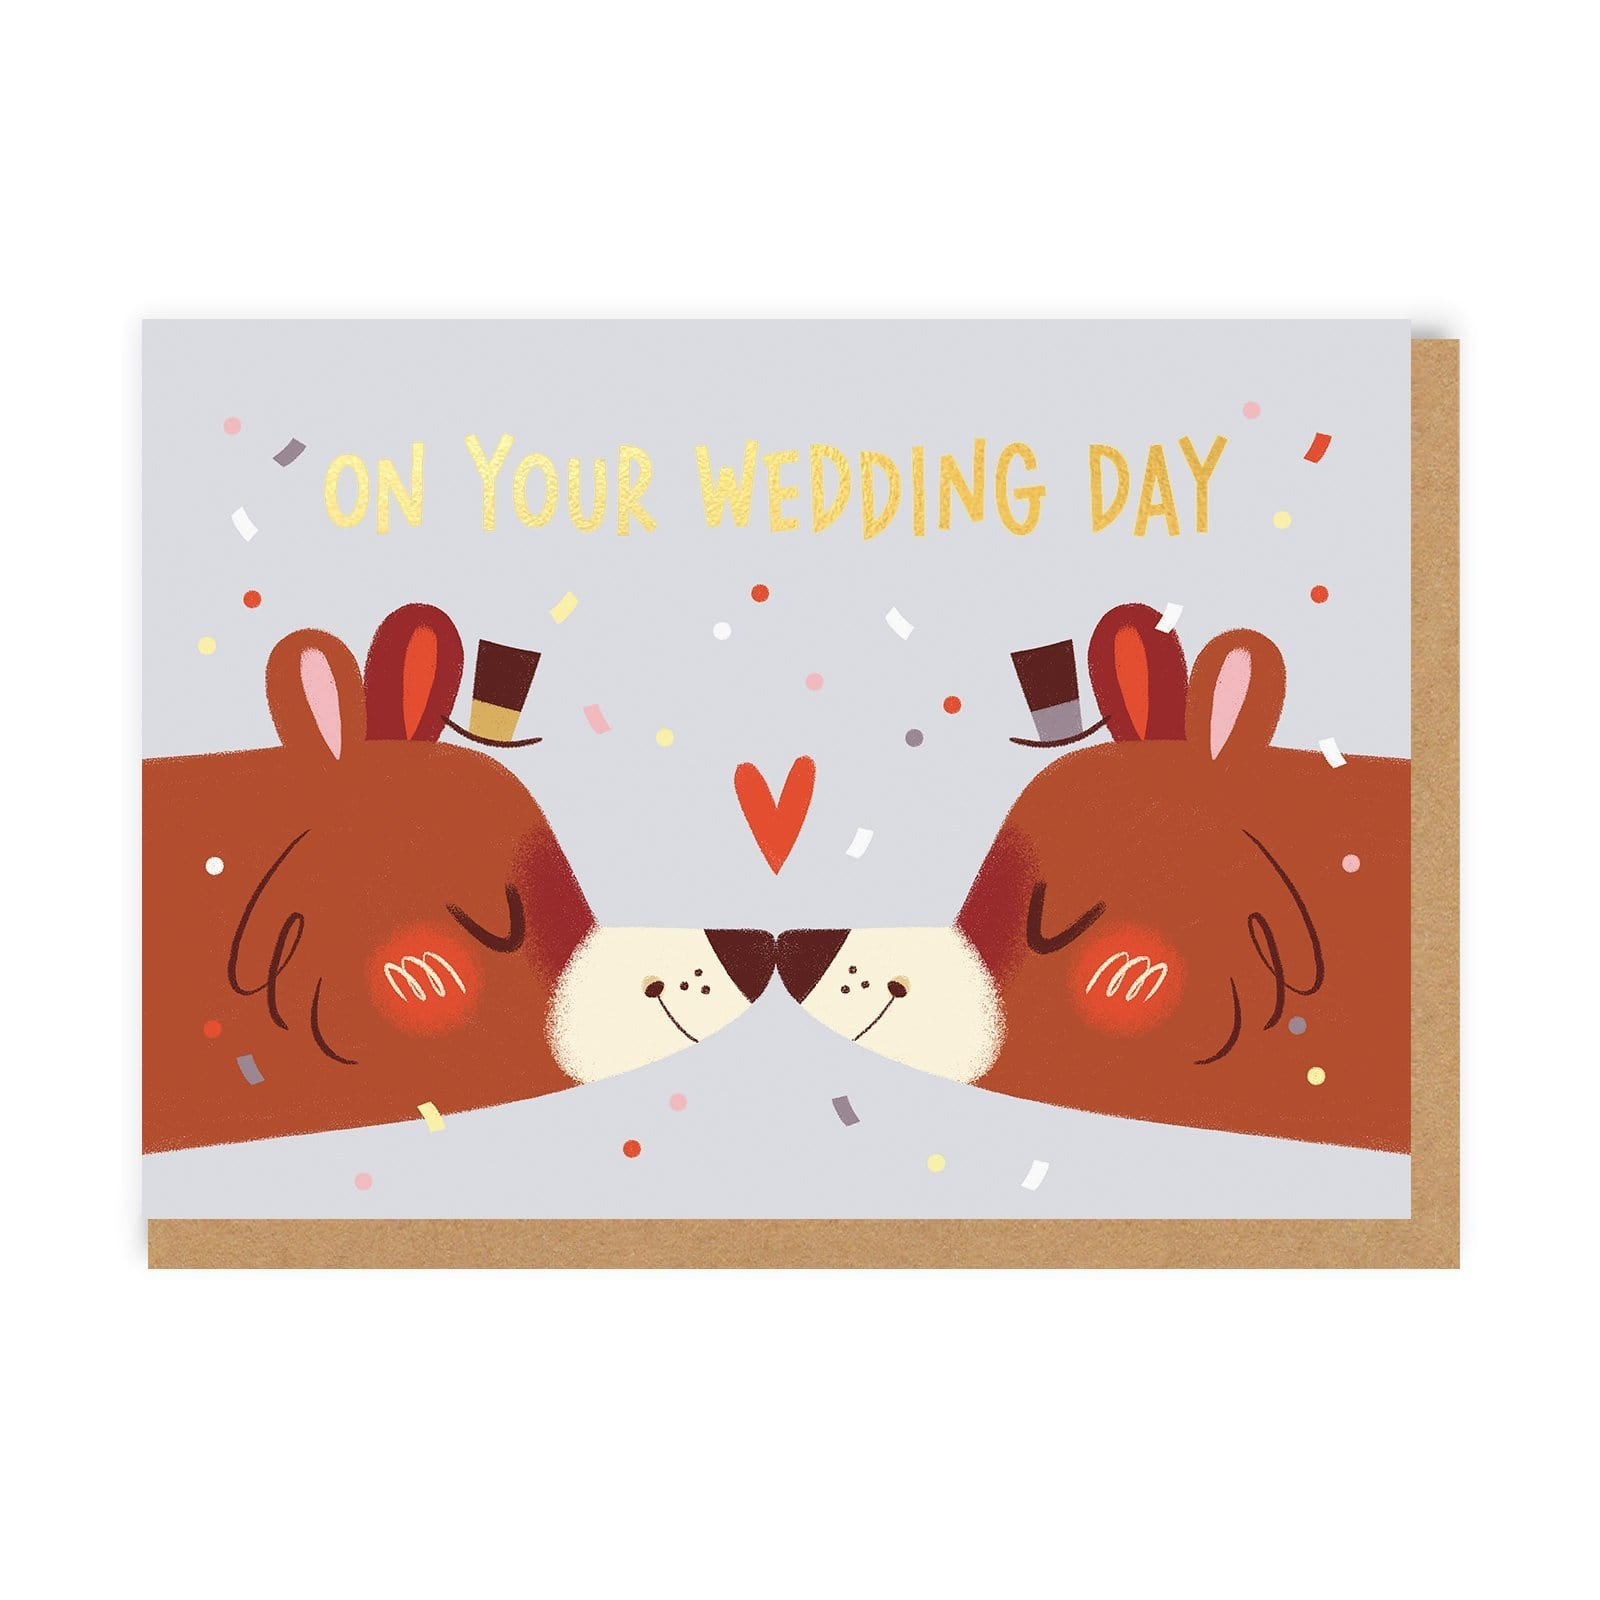 Gentlemen Wedding Bears Greeting Card